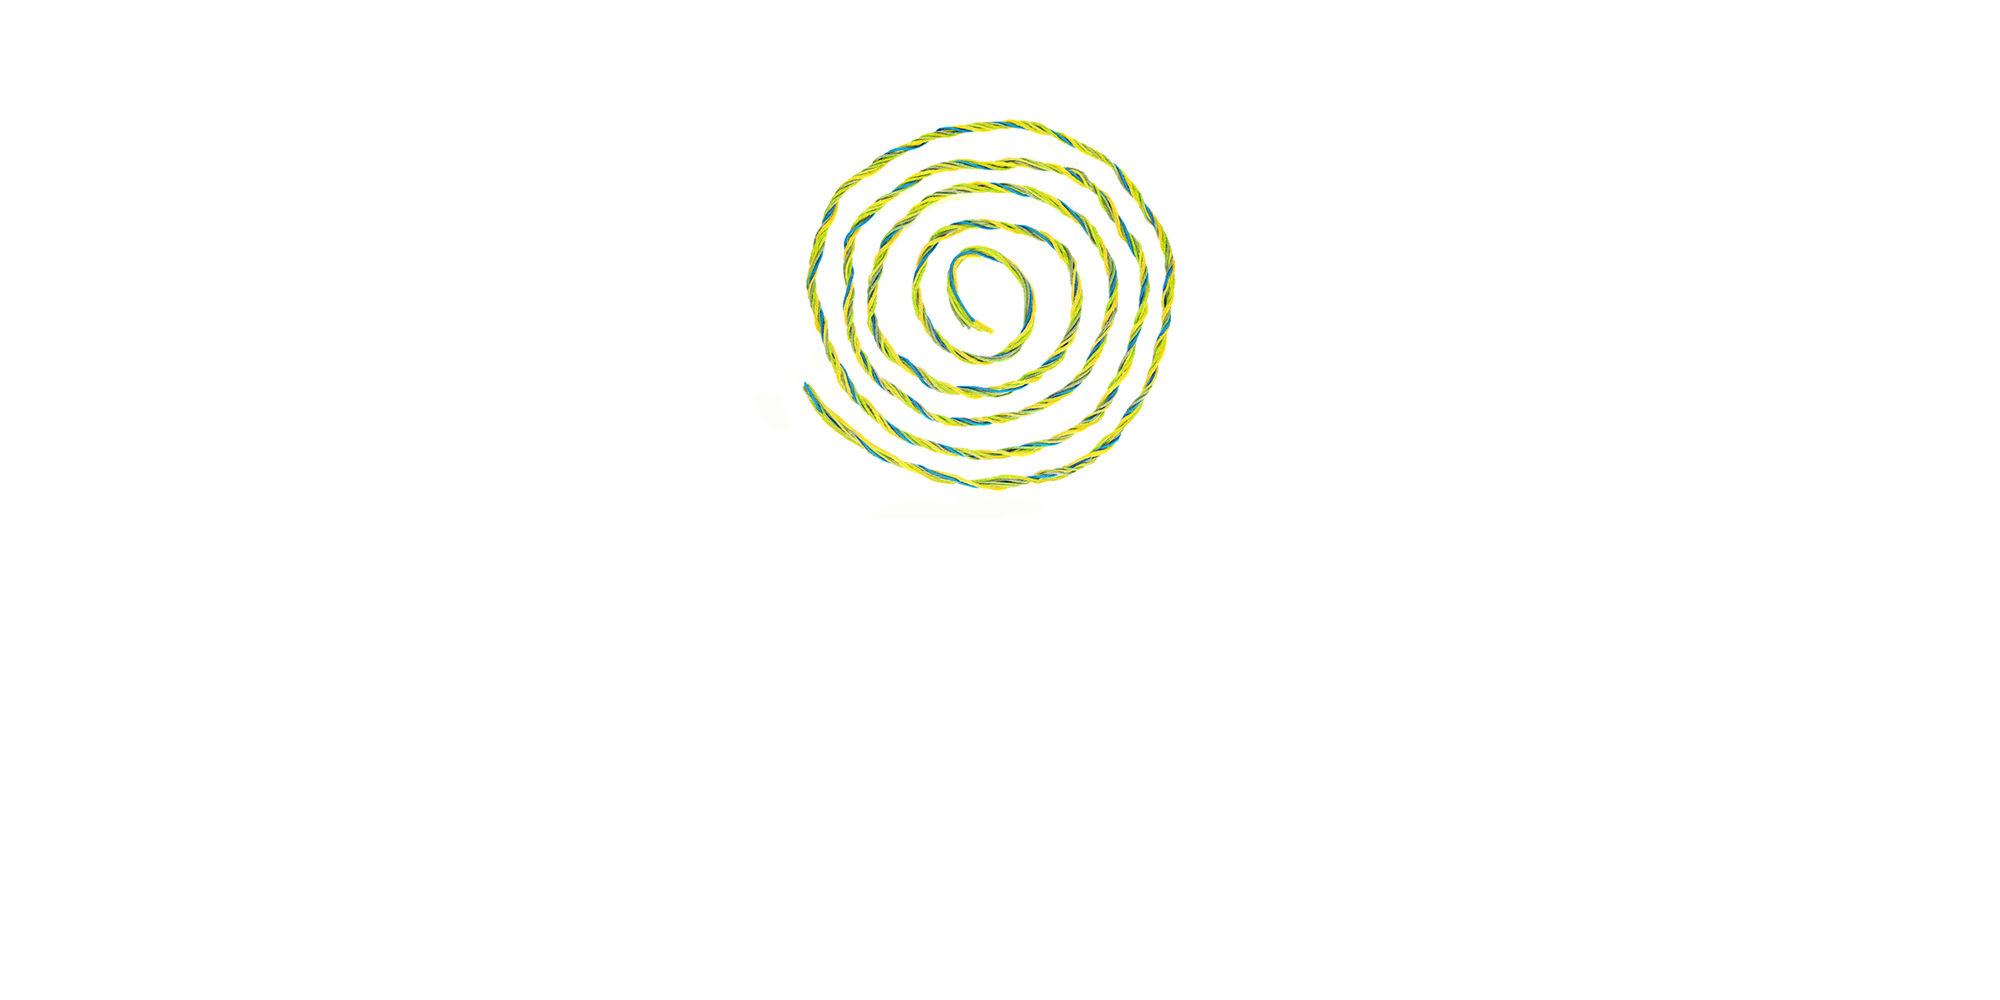 green swirl design on white background